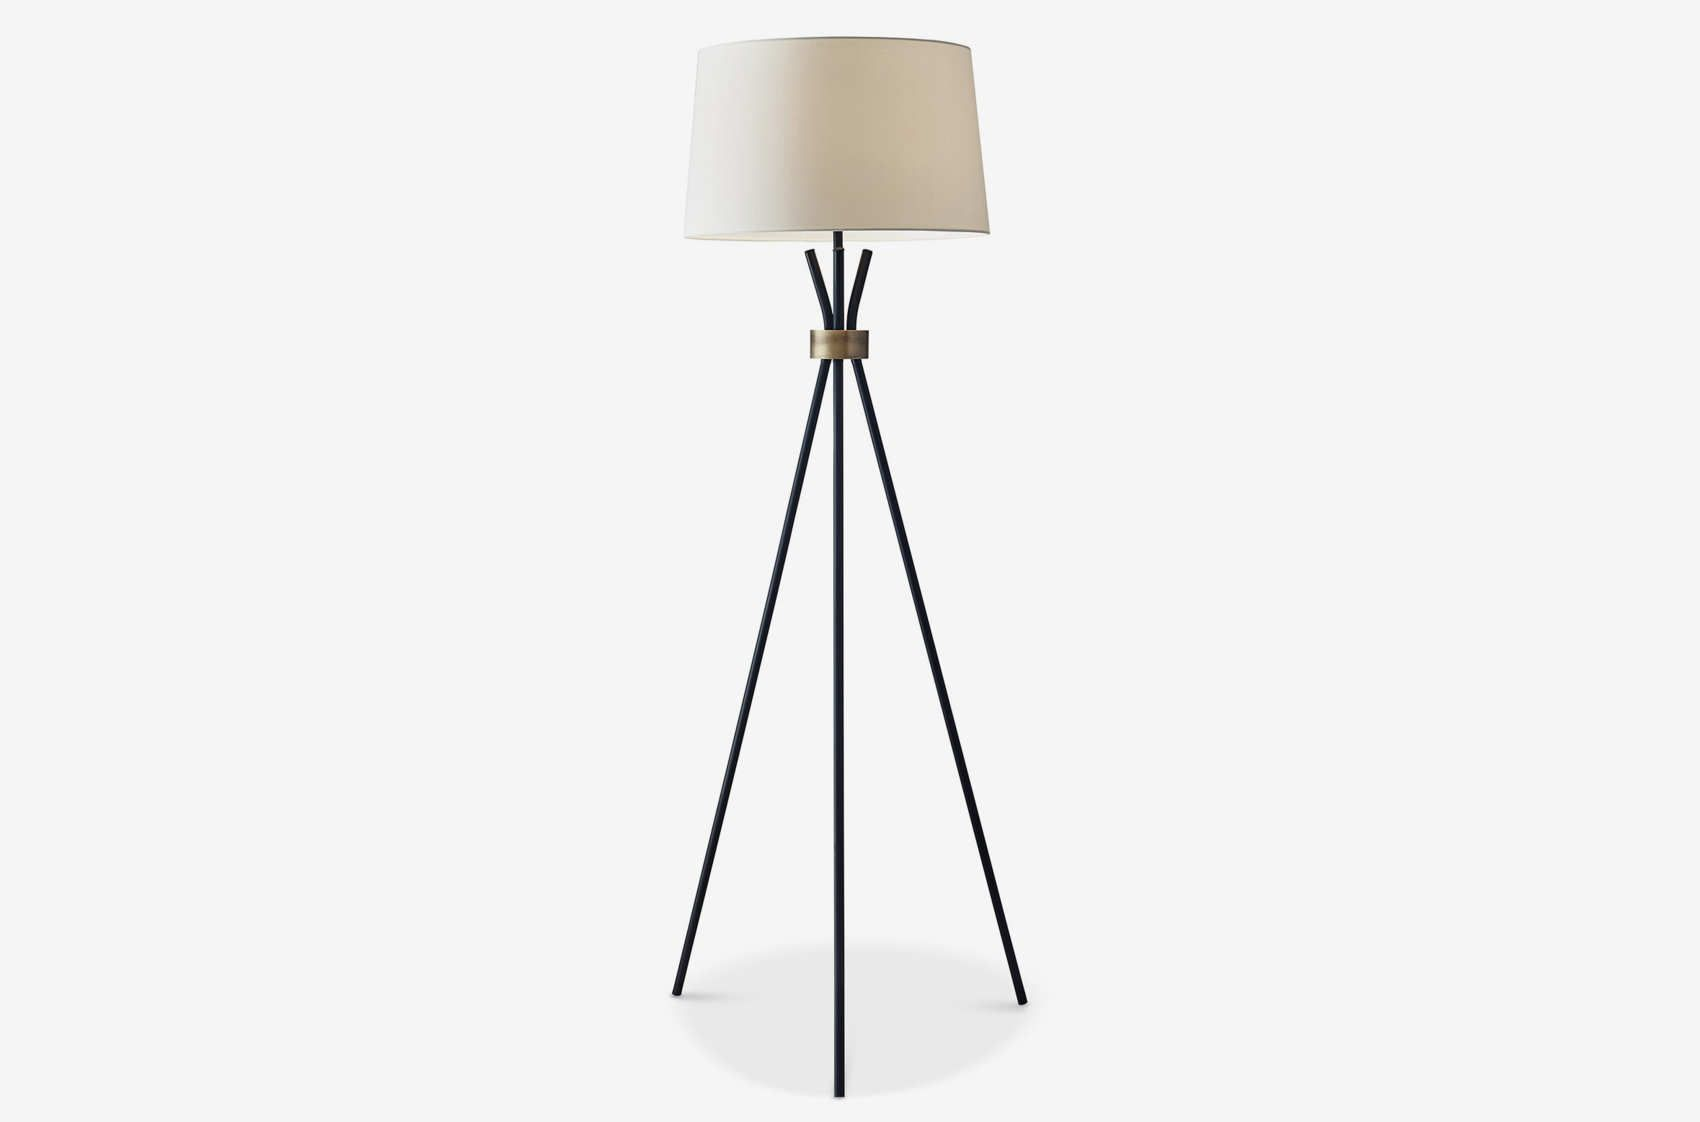 The 35 Lamps I Buy On Amazon And Sell For 100 On Craigslist